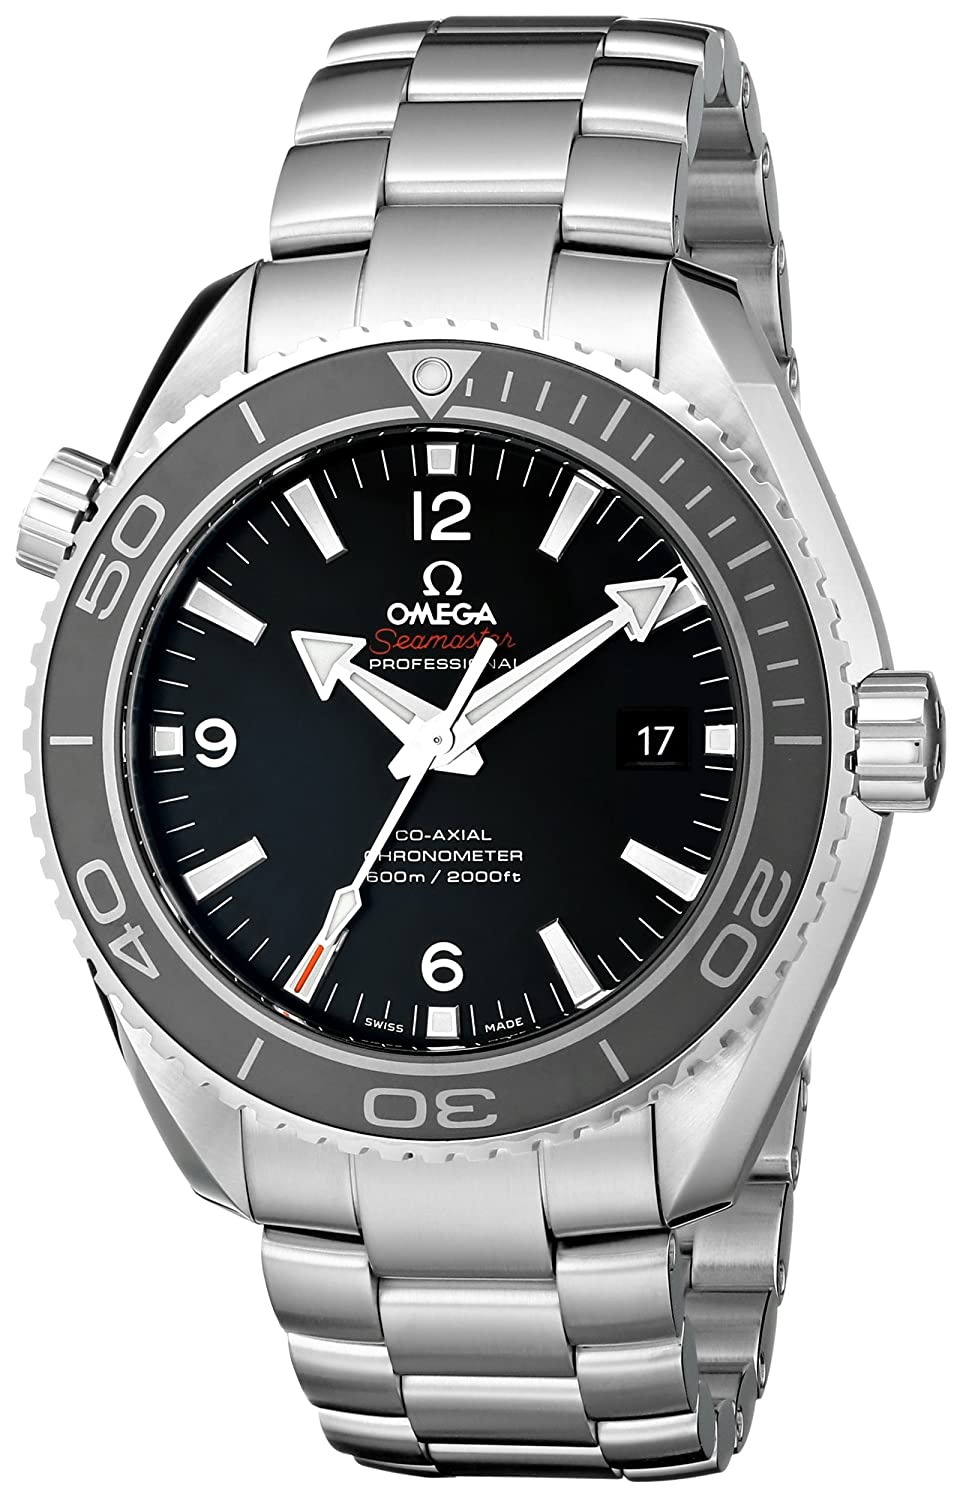 Oris Divers Heritage Sixty-Five Automatic Mens Watch 733-7707-4064RS